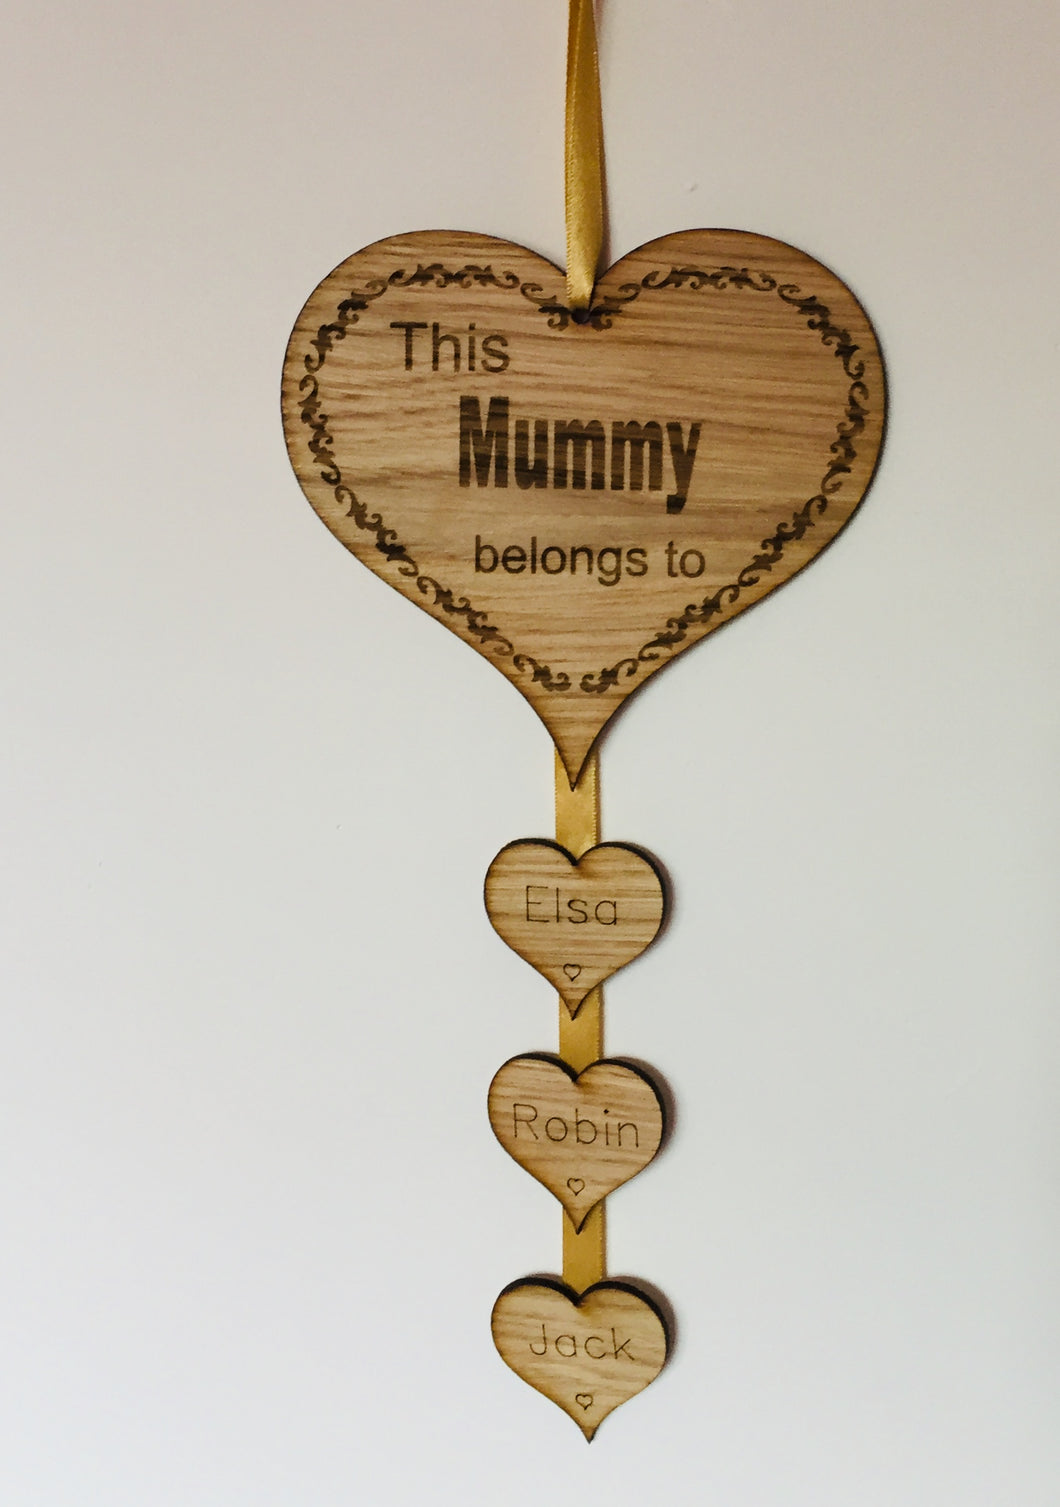 Hanging wall plaque, heart shape, this ... belongs to - Laser LLama Designs Ltd